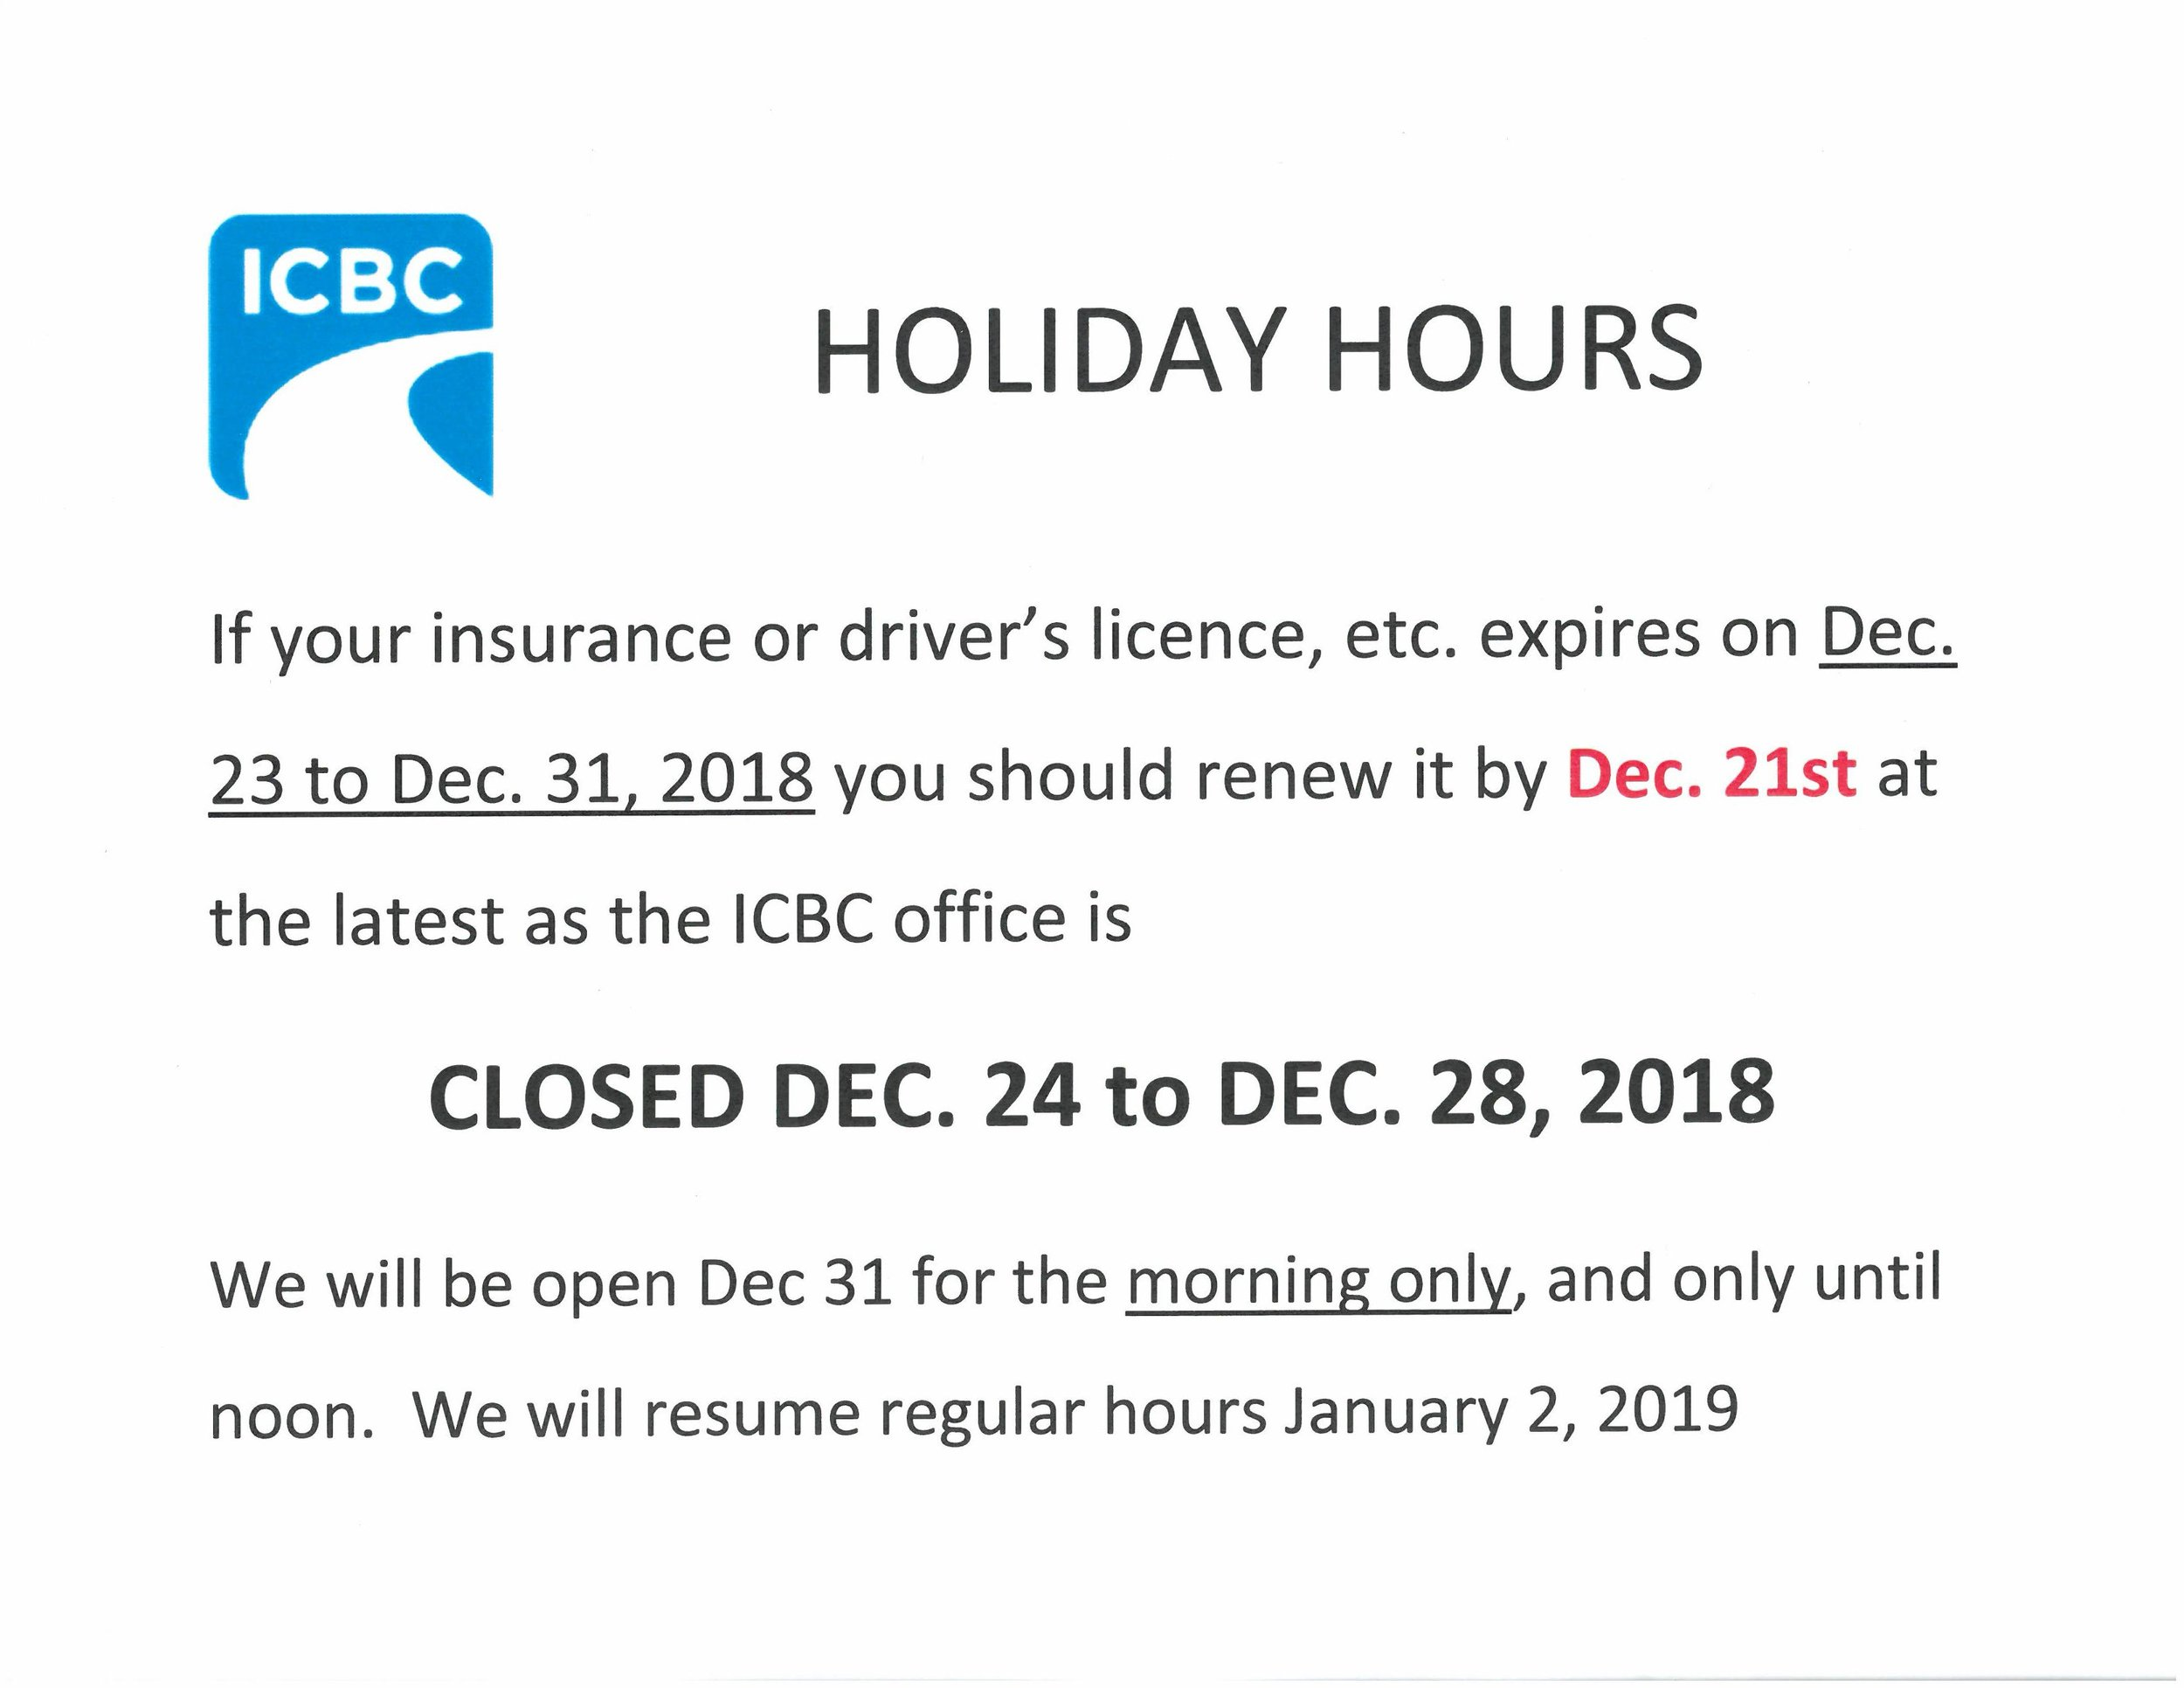 ICBC Holiday Hours 2018.jpg